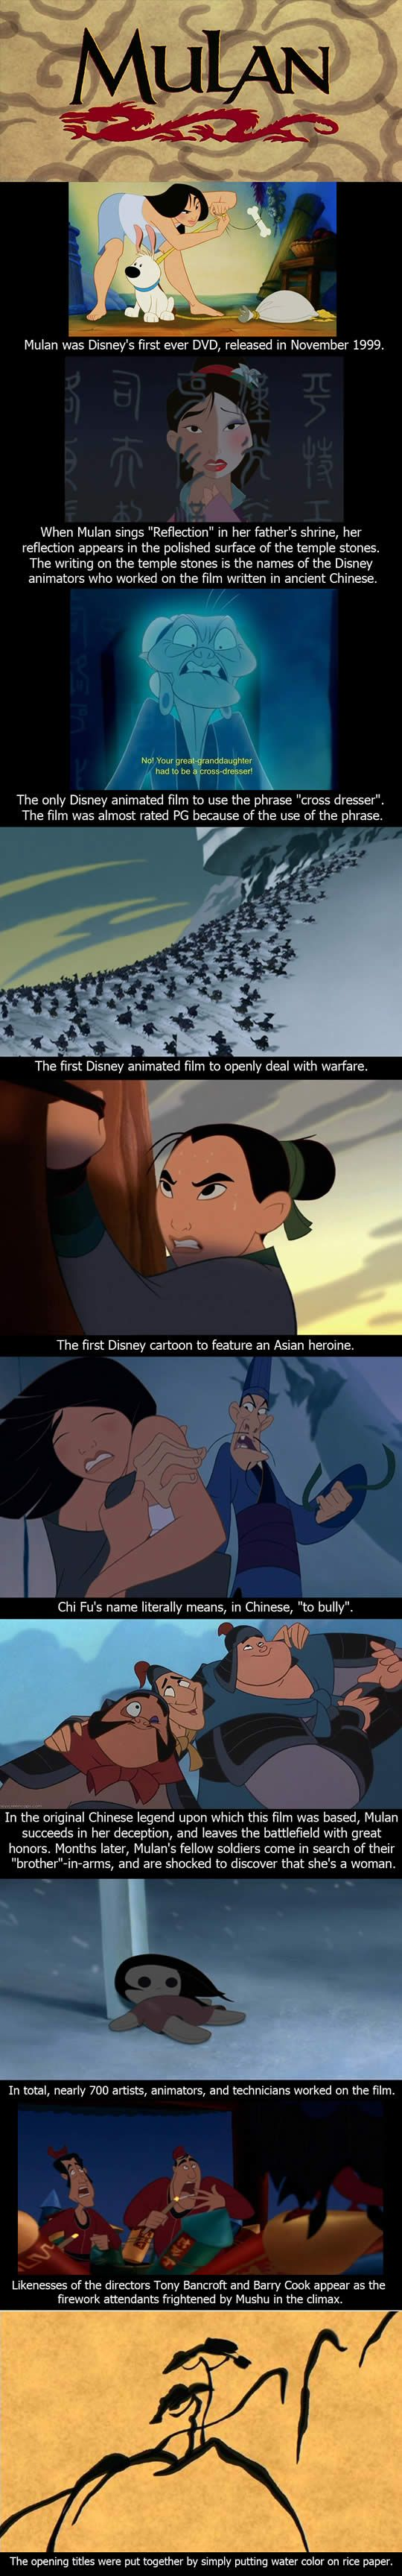 best images about mulan disney disney mulan